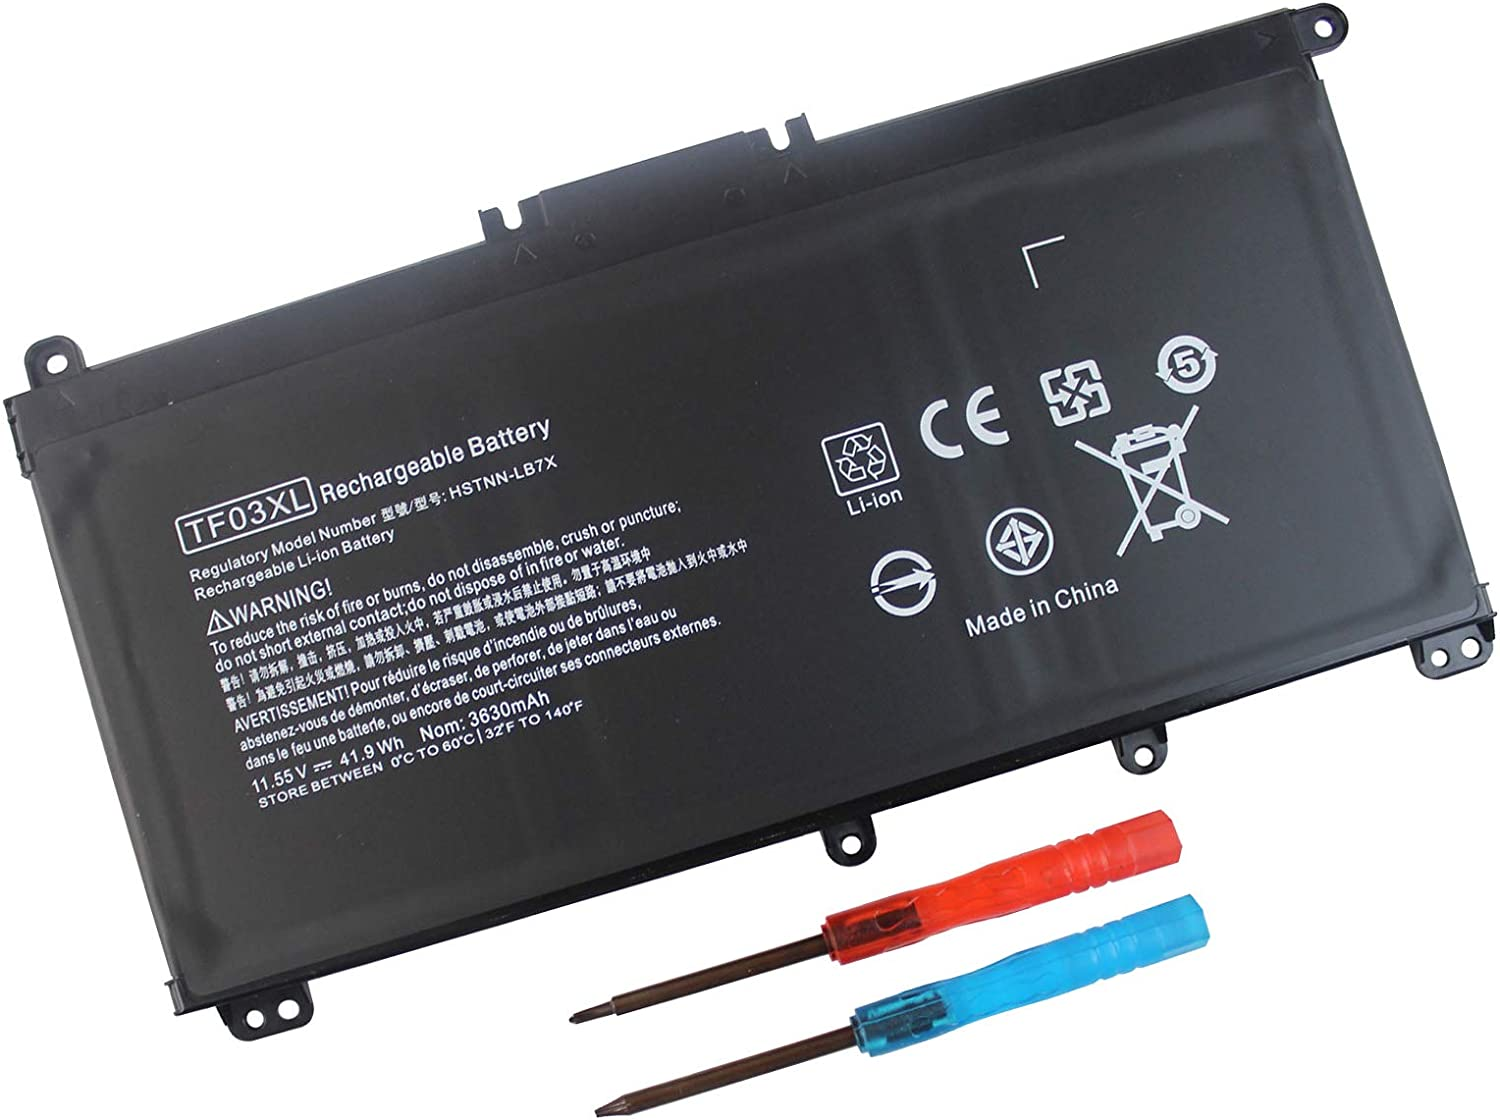 TF03XL 920070-855 Battery for HP Pavilion 15-CC023CL 15-CC050WM 15-CC563ST 17-AR050WM 15-CC 15-CD 14-BF Series 920046-421 920046-121 920046-541 HSTNN-LB7X HSTNN-IB7Y HSTNN-LB7J - 12 Months Warranty